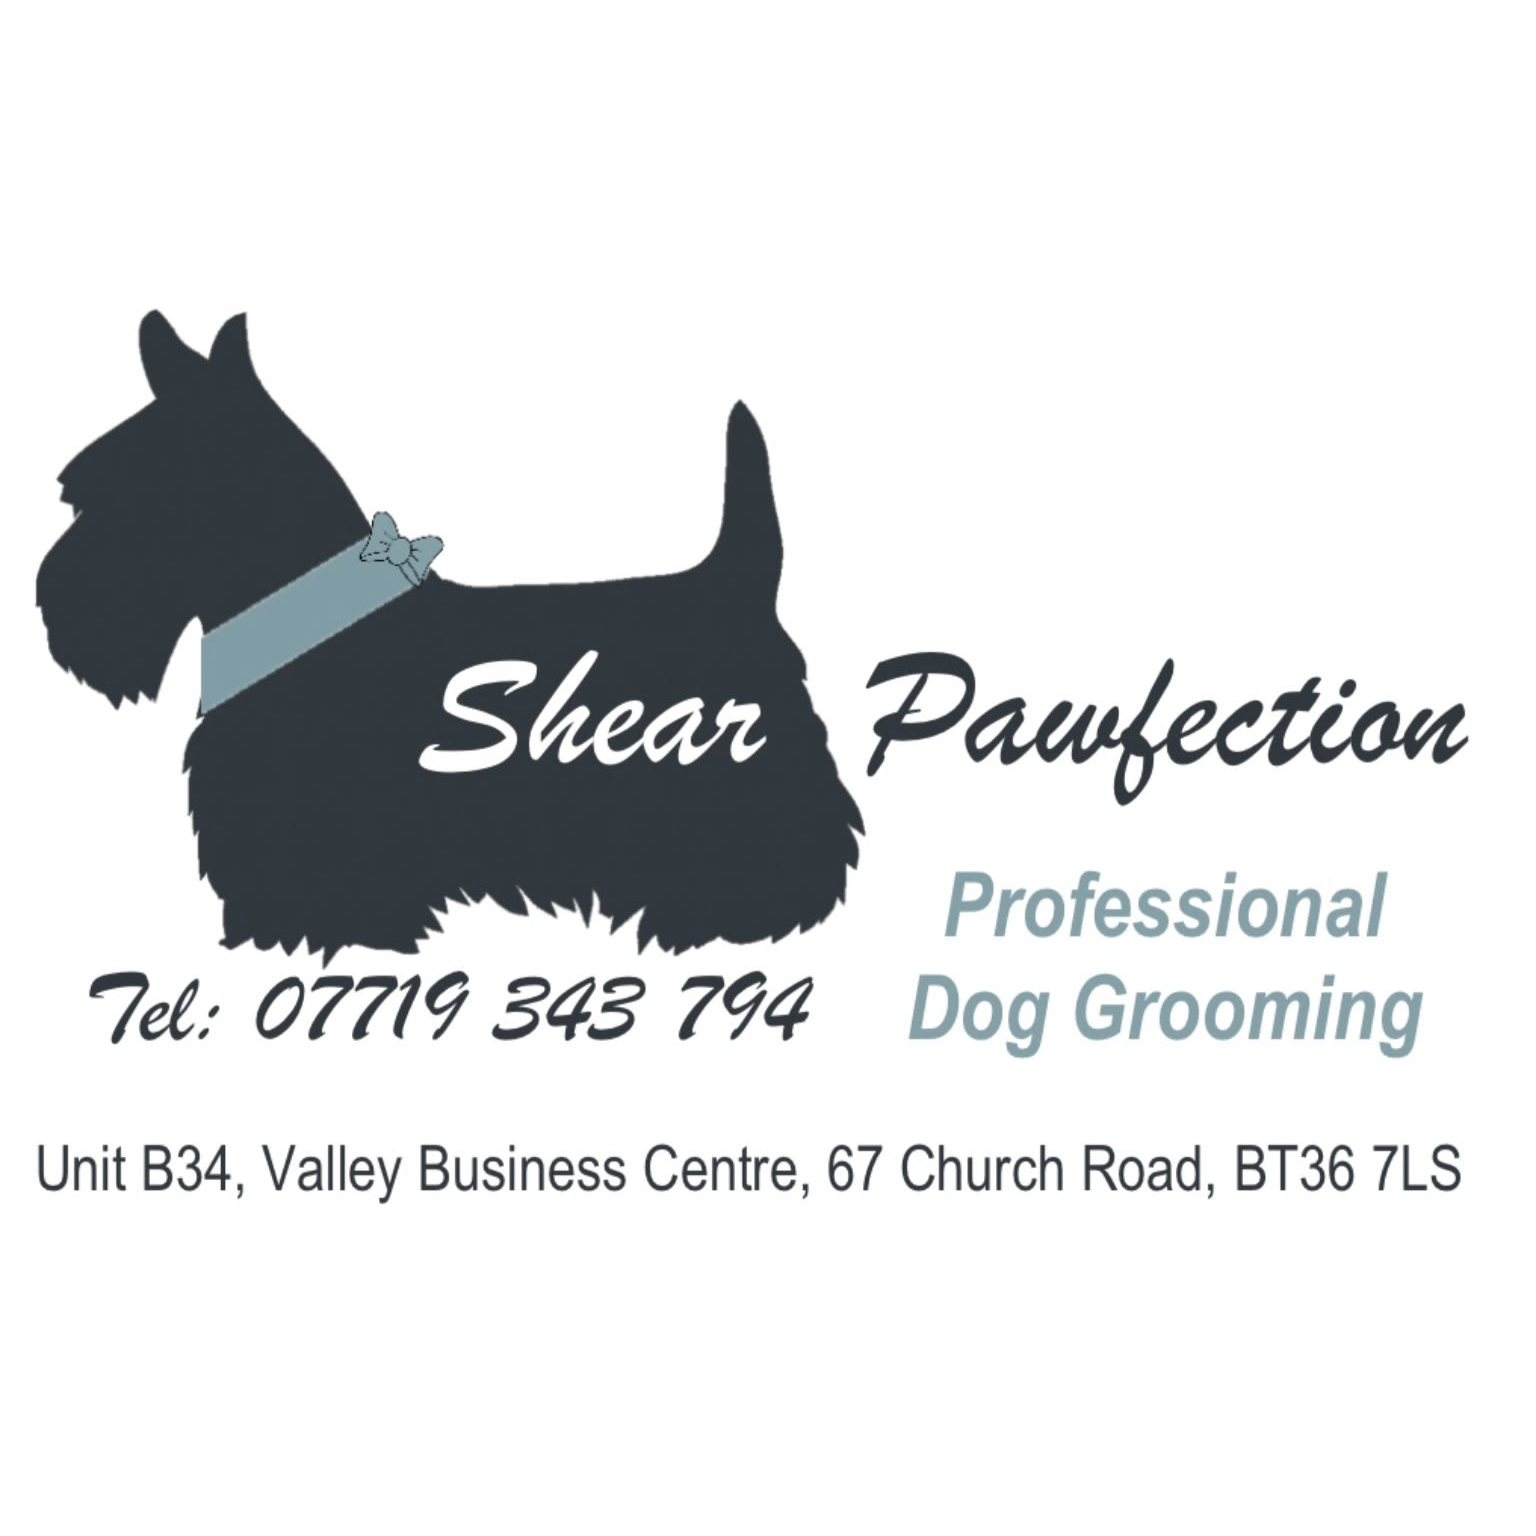 Shear Pawfection Professional Dog Grooming - Newtownabbey, County Antrim BT36 7LS - 07719 343794   ShowMeLocal.com